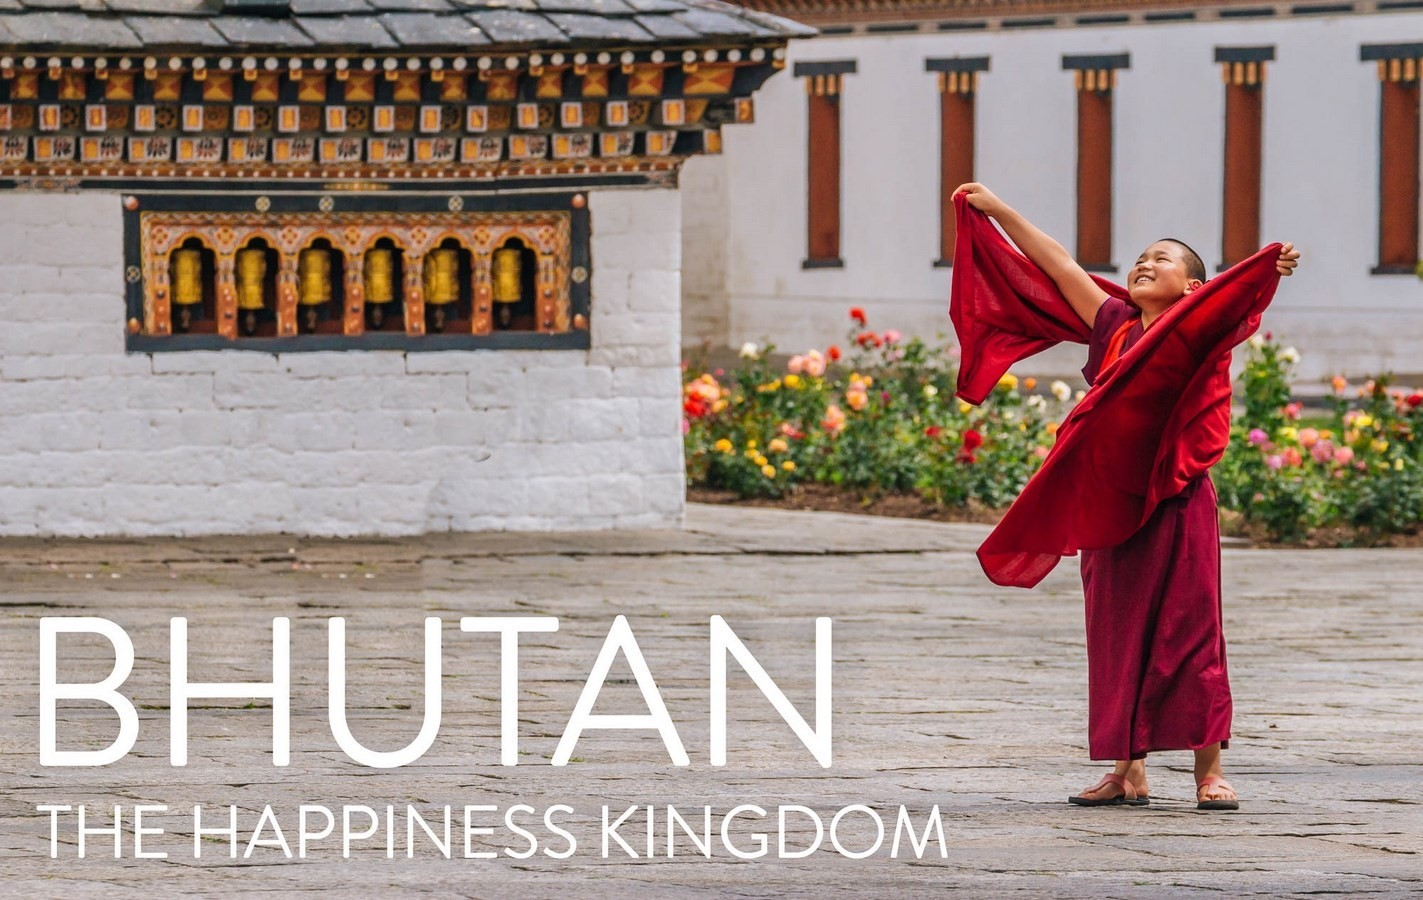 What makes Bhutan thrive on the happiness model - Sheet1